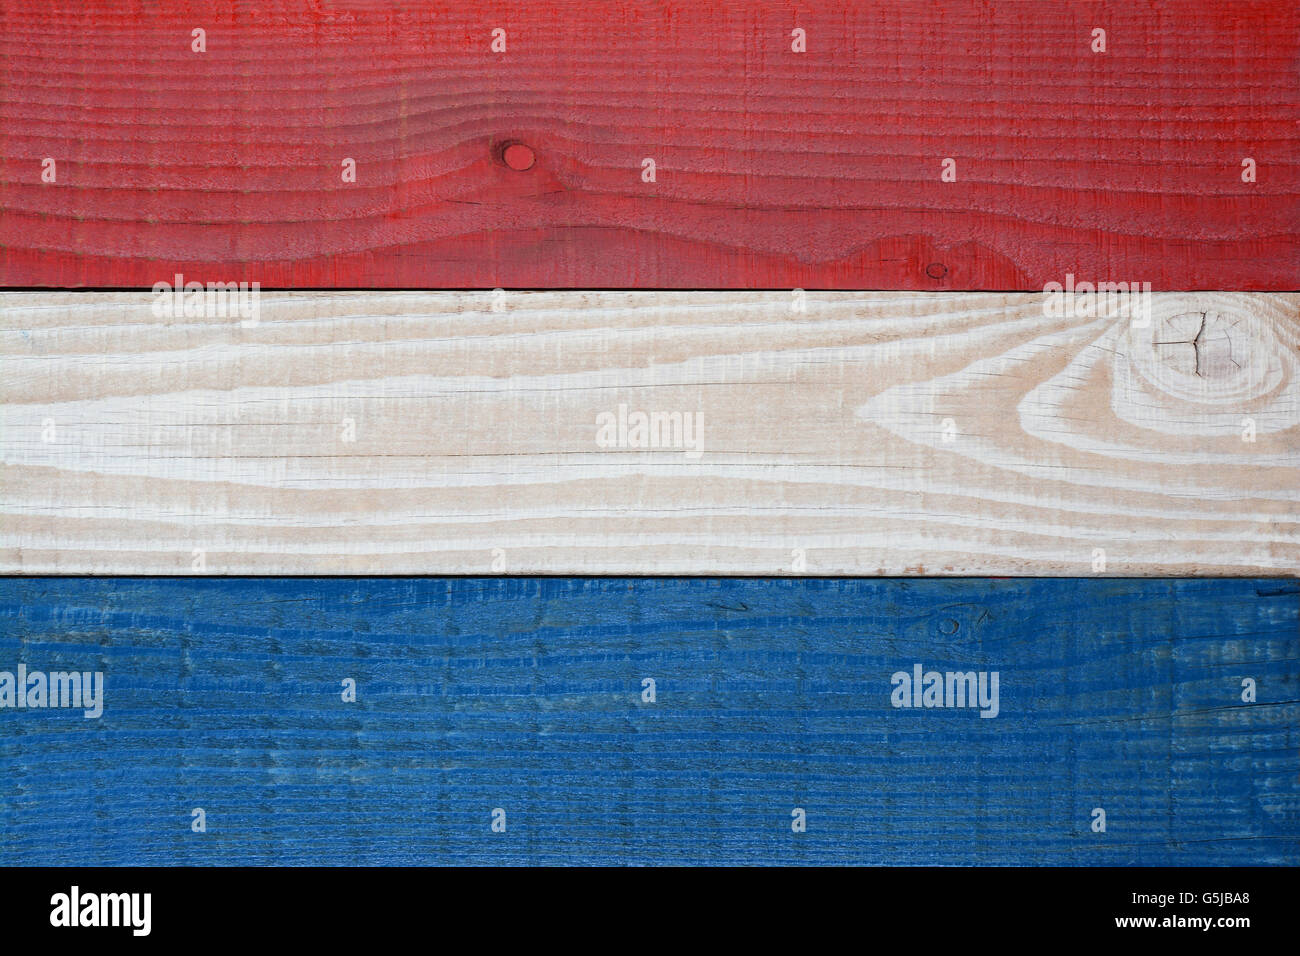 closeup red white and blue boards background patriotic background stock photo alamy https www alamy com stock photo closeup red white and blue boards background patriotic background 106739536 html